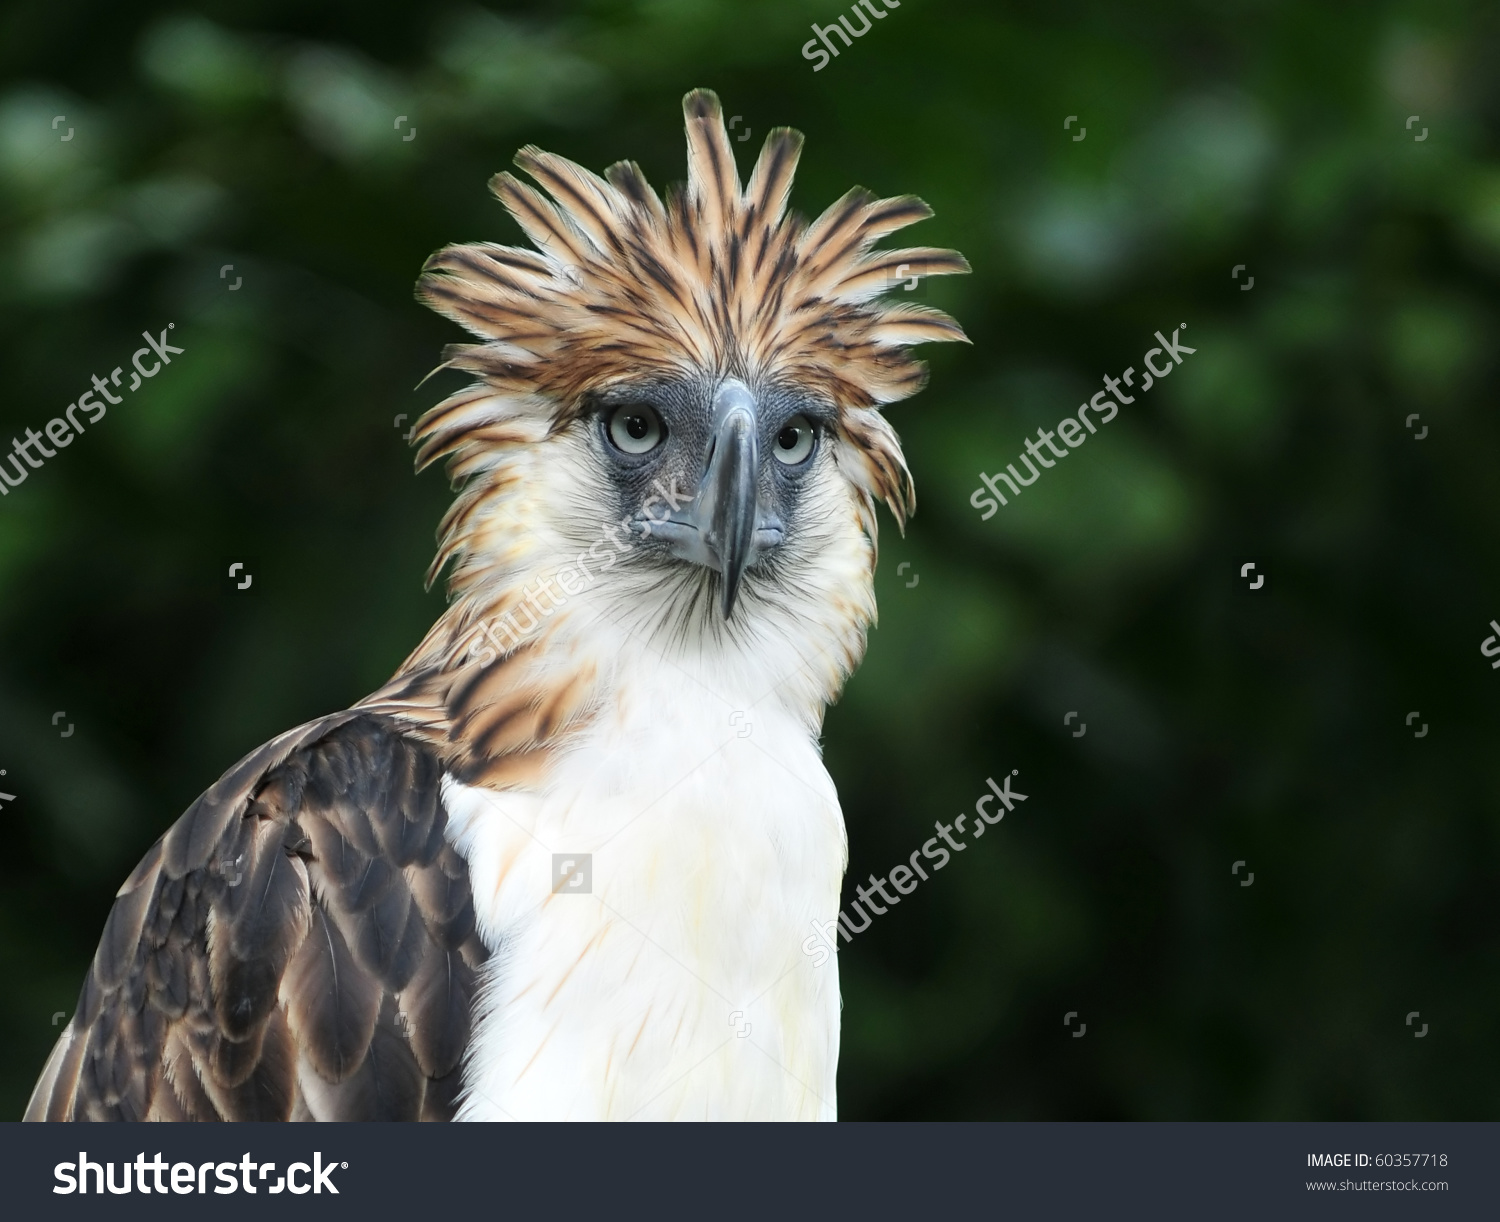 The Philippine Eagle clipart #12, Download drawings